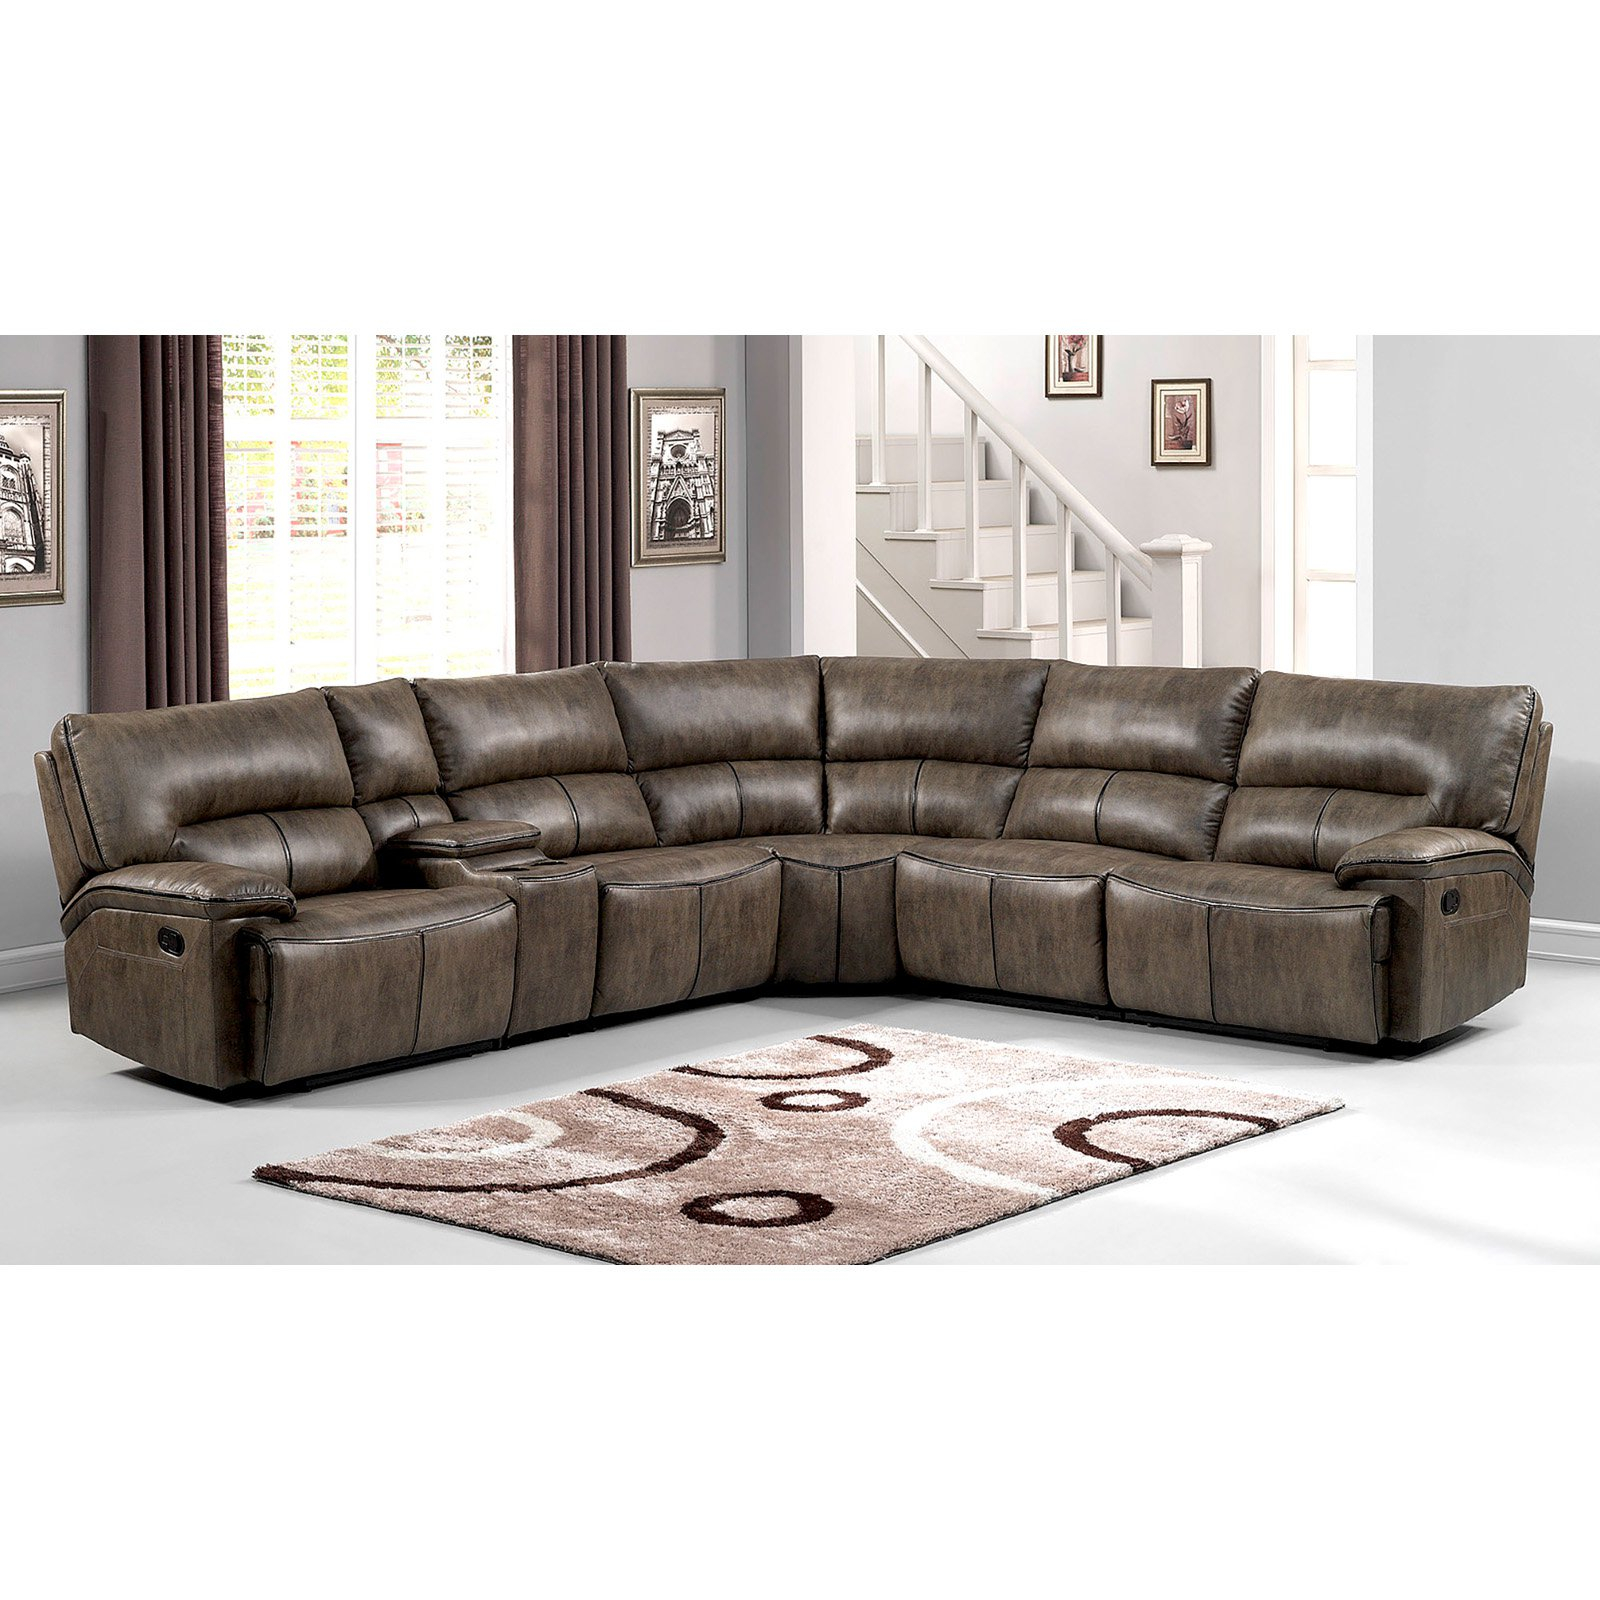 Ac Pacific Donovan 6 Piece Sectional Sofa Set Walmart throughout 13 Smart Designs of How to Makeover 6 Piece Living Room Set